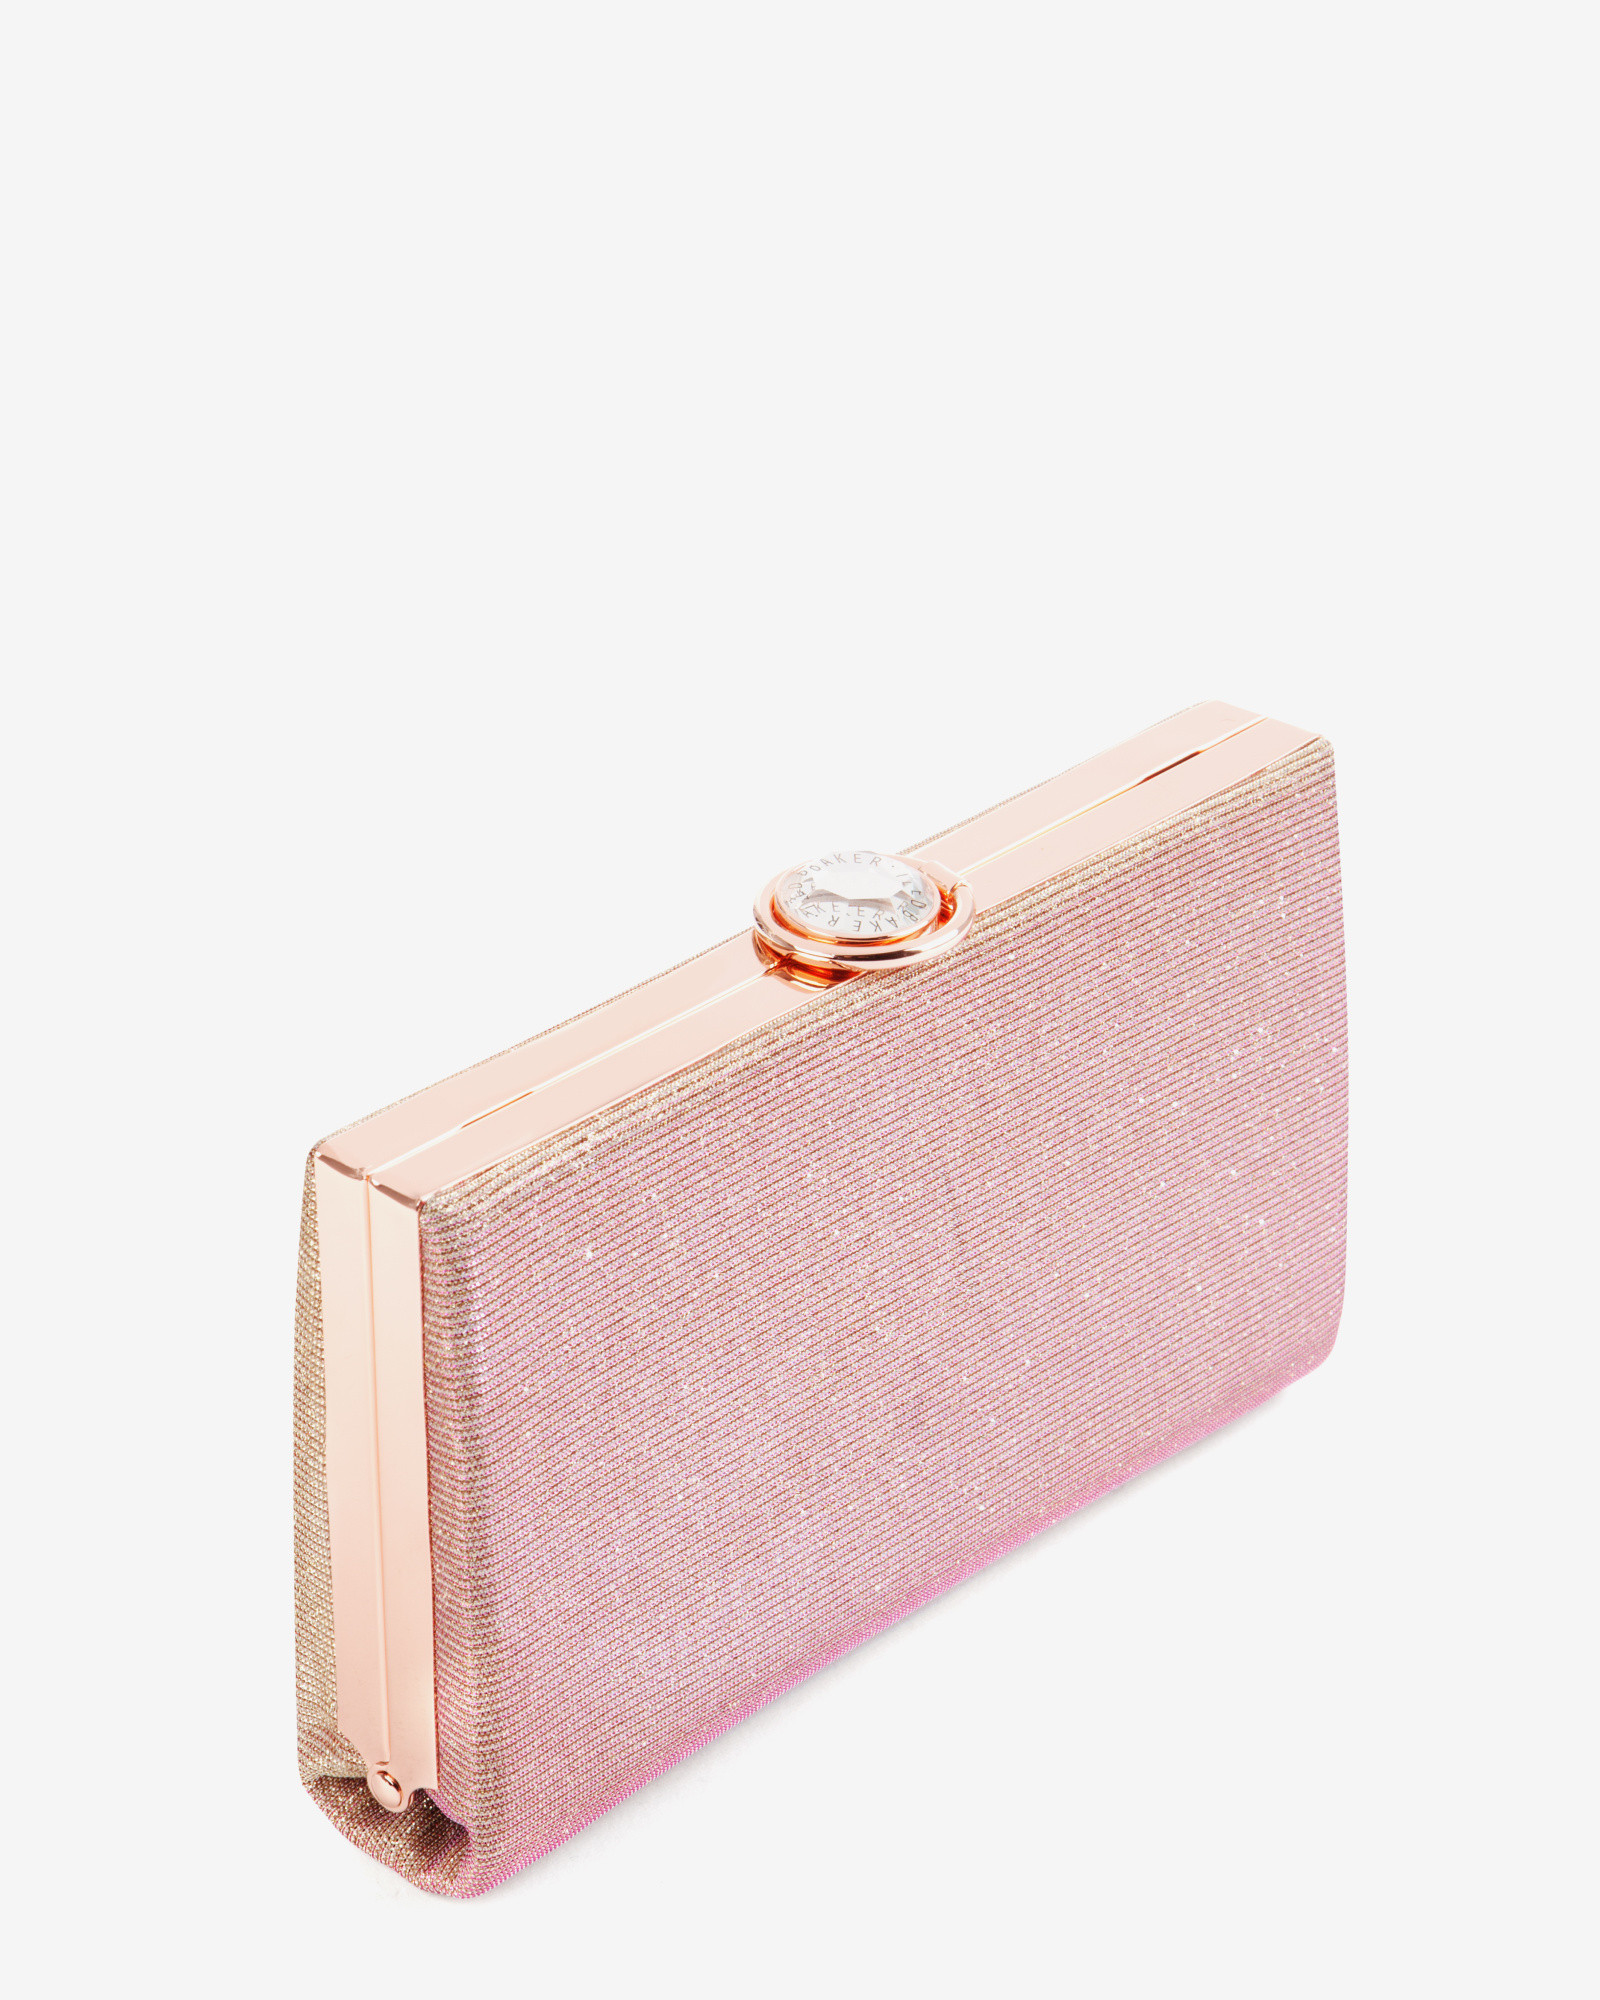 3f5034dbcefc2e Ted Baker Hard Case Glitter Clutch Bag in Pink - Lyst